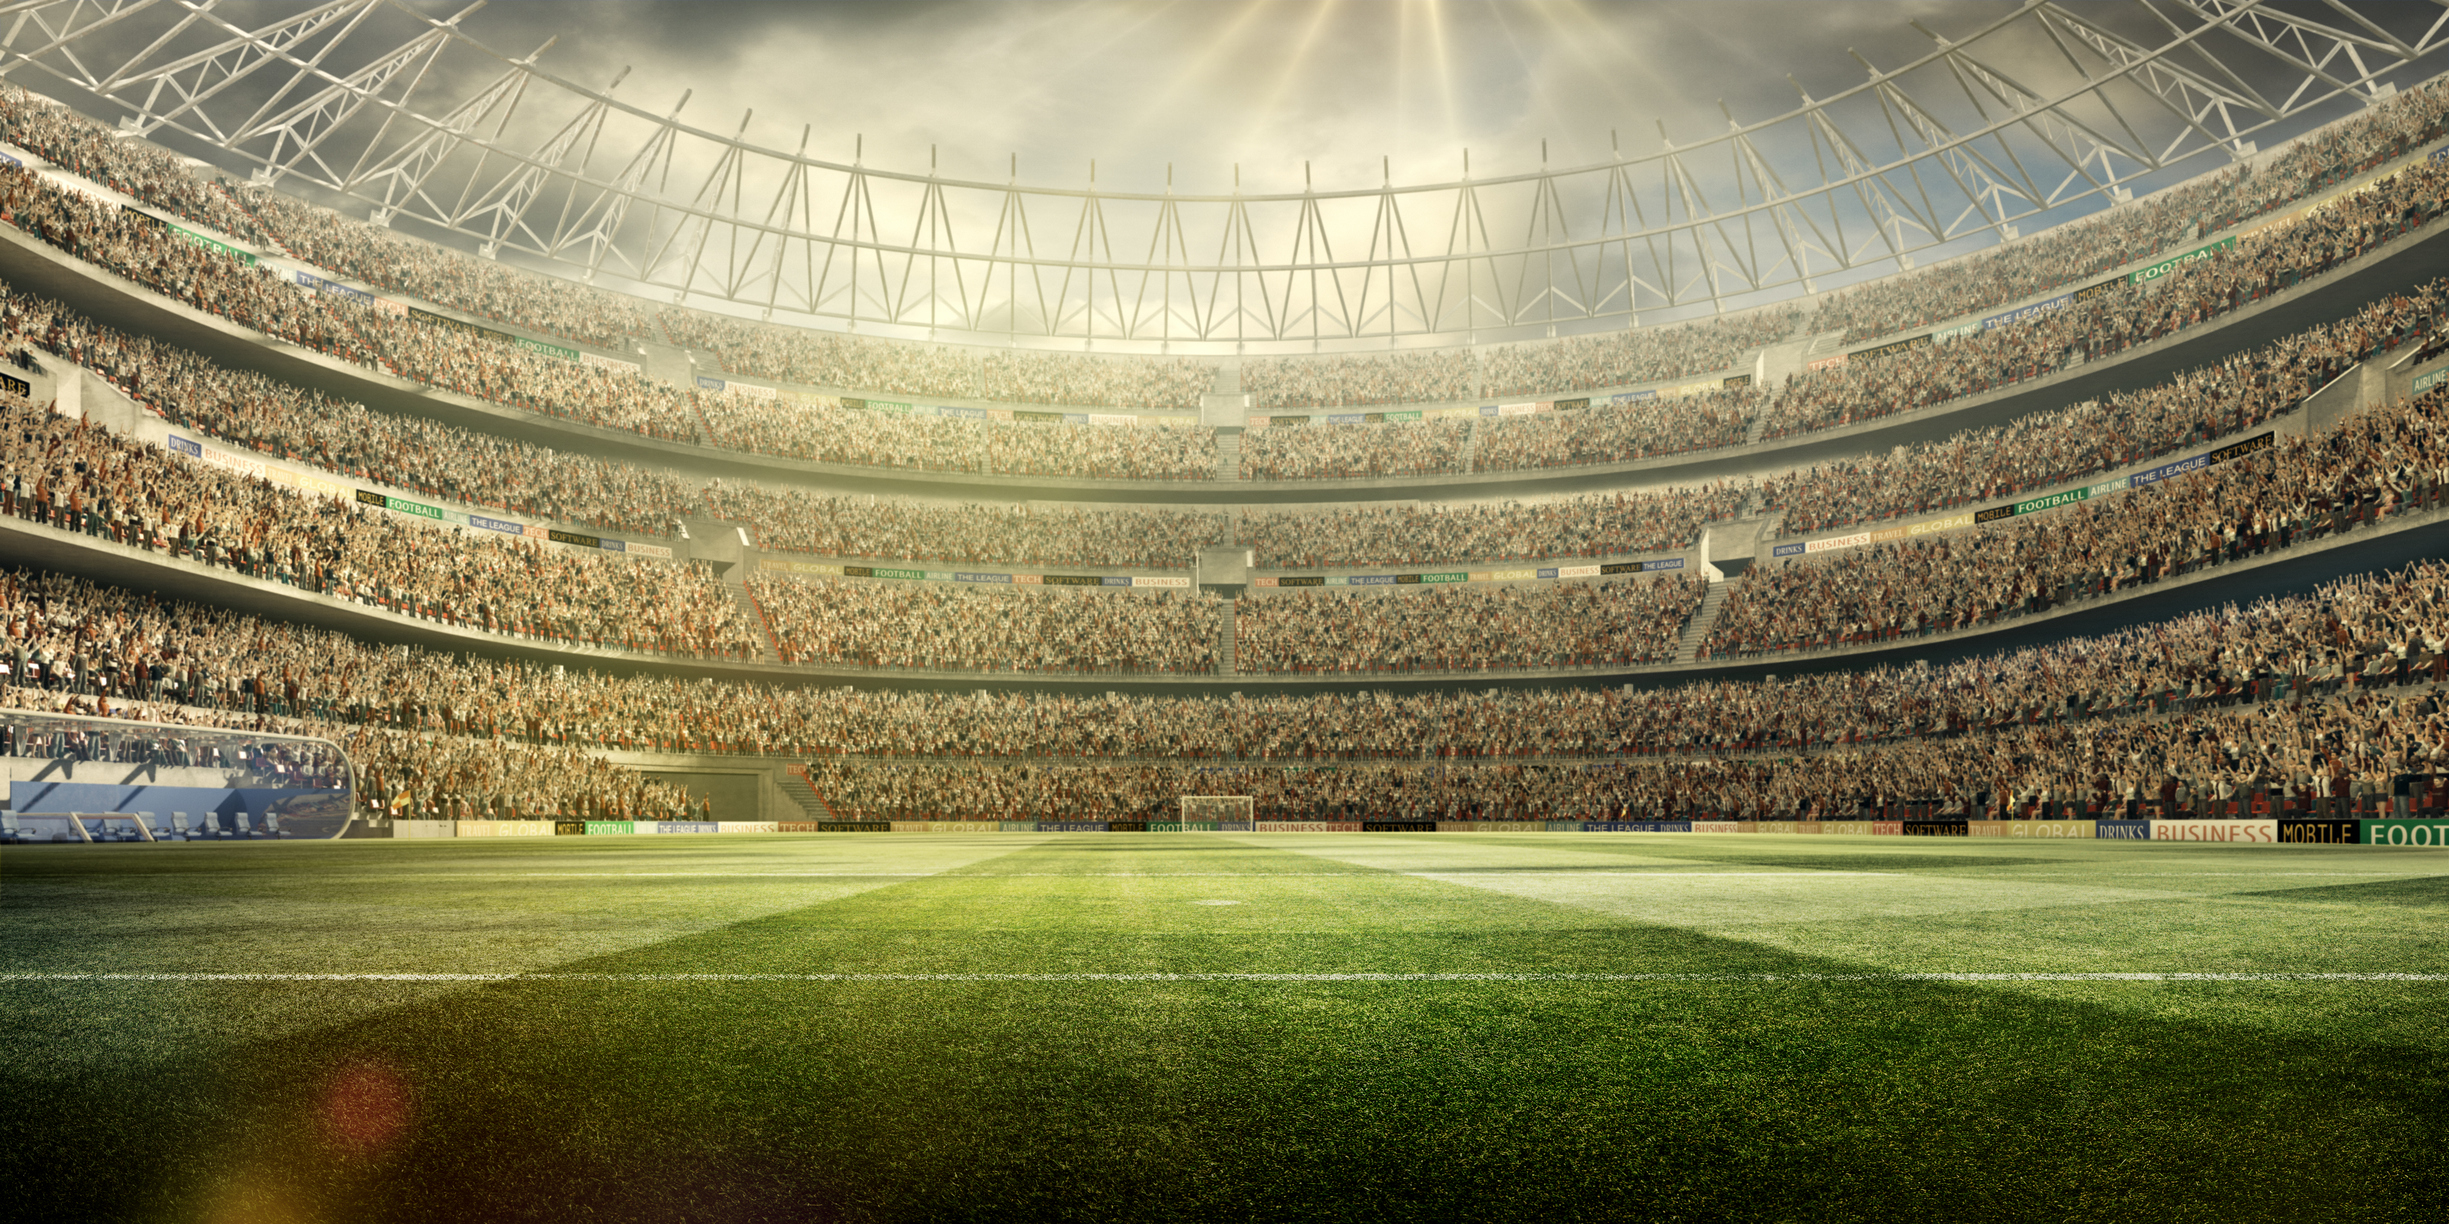 Soccer stadium background wide angle - TrackMaven | The ...